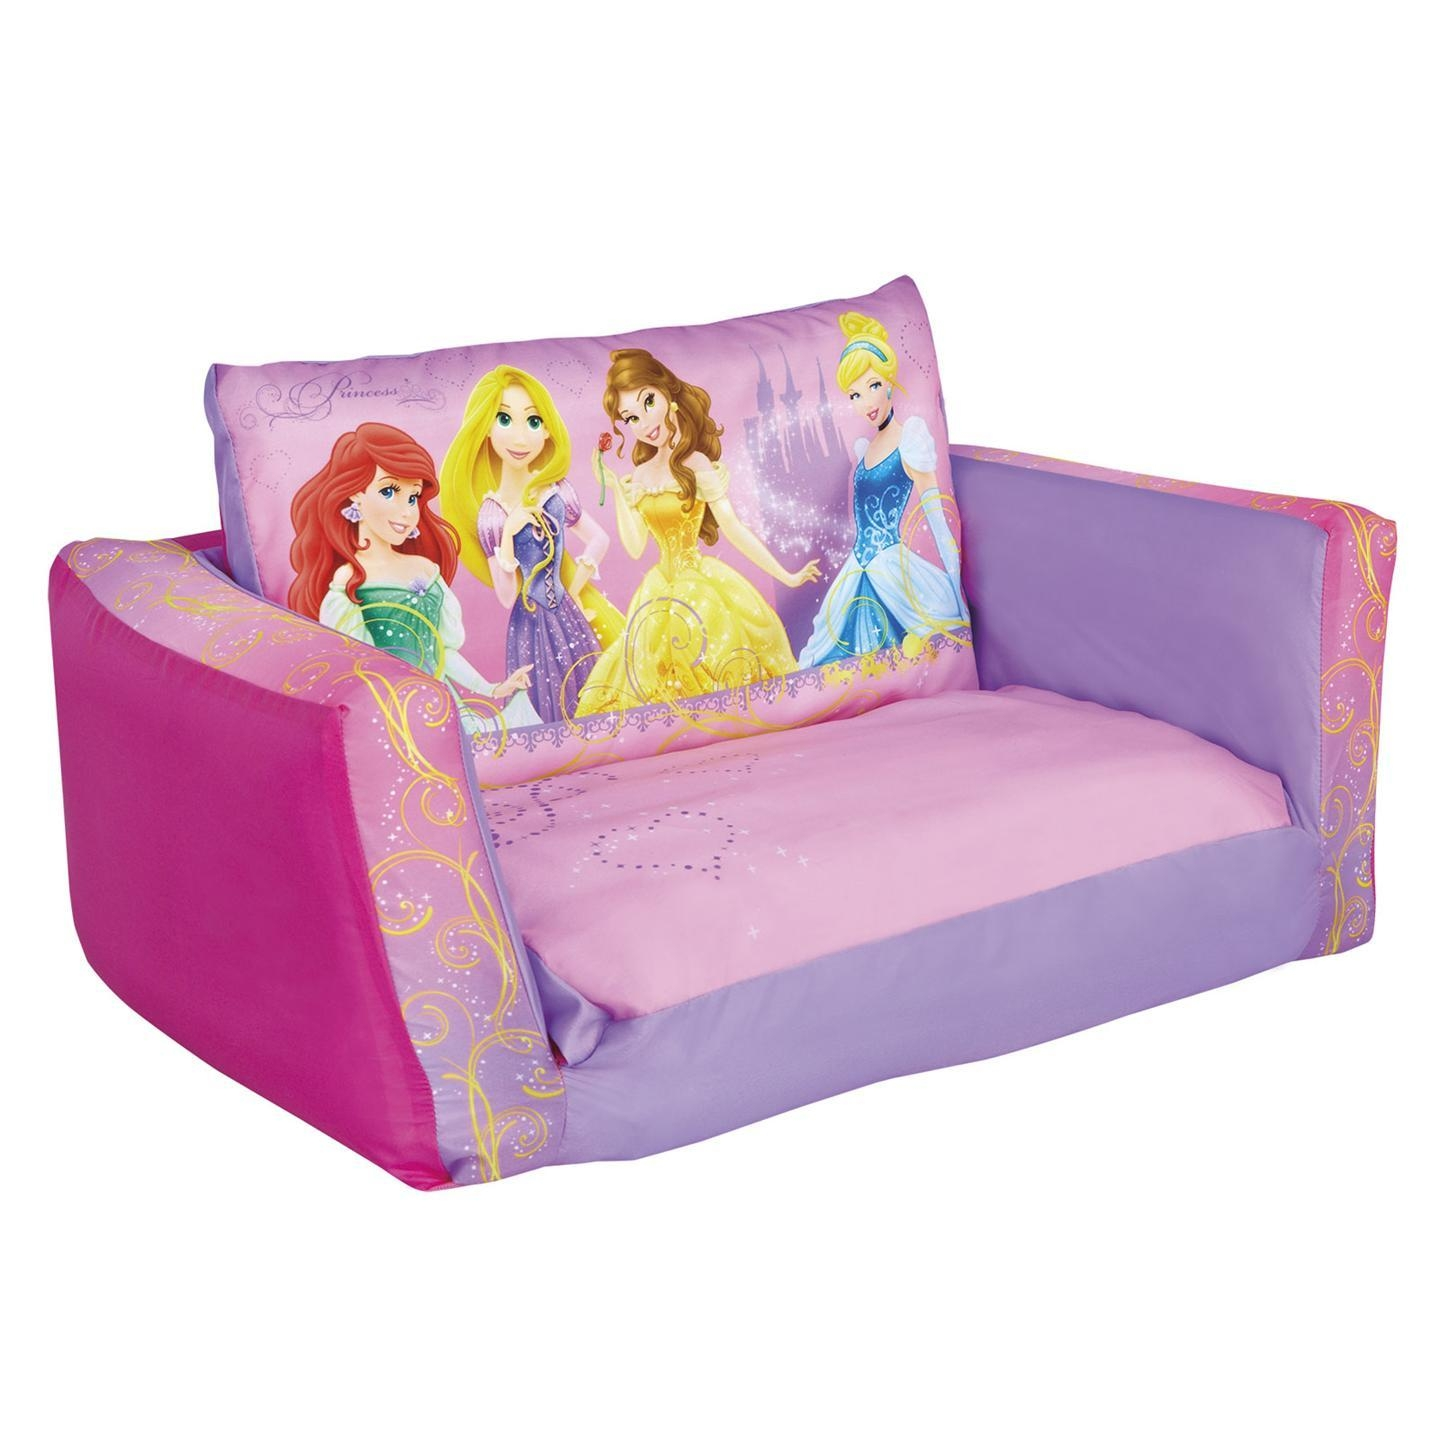 Disney Princess Flip Open Sofa With Design Image 28466 | Kengire Pertaining To Disney Princess Sofas (Image 5 of 20)